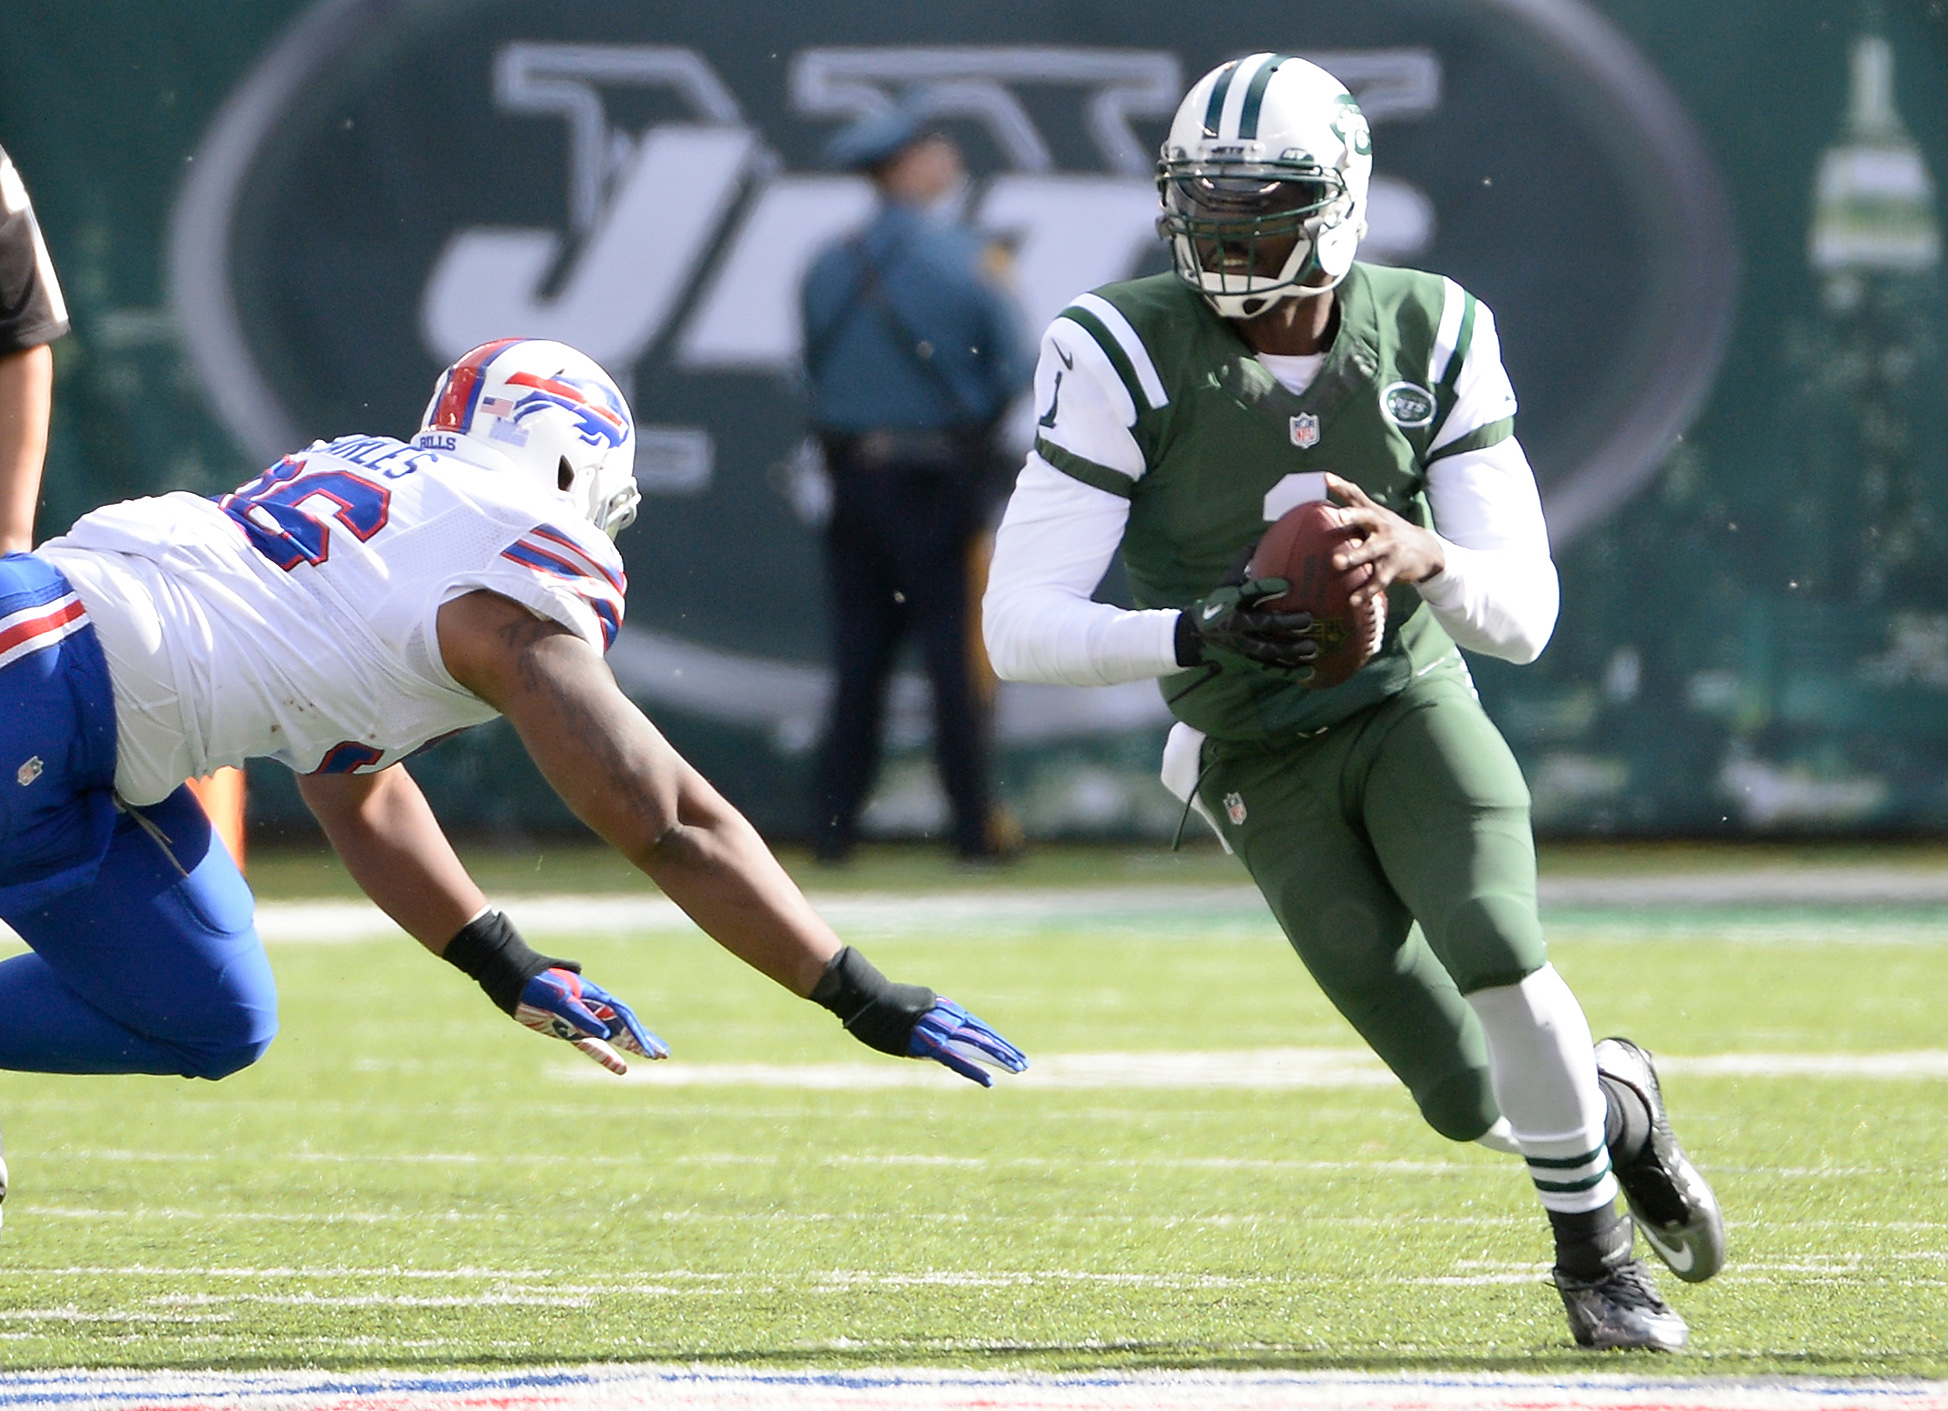 Geno Smith expects to learn from Mark Sanchez while both